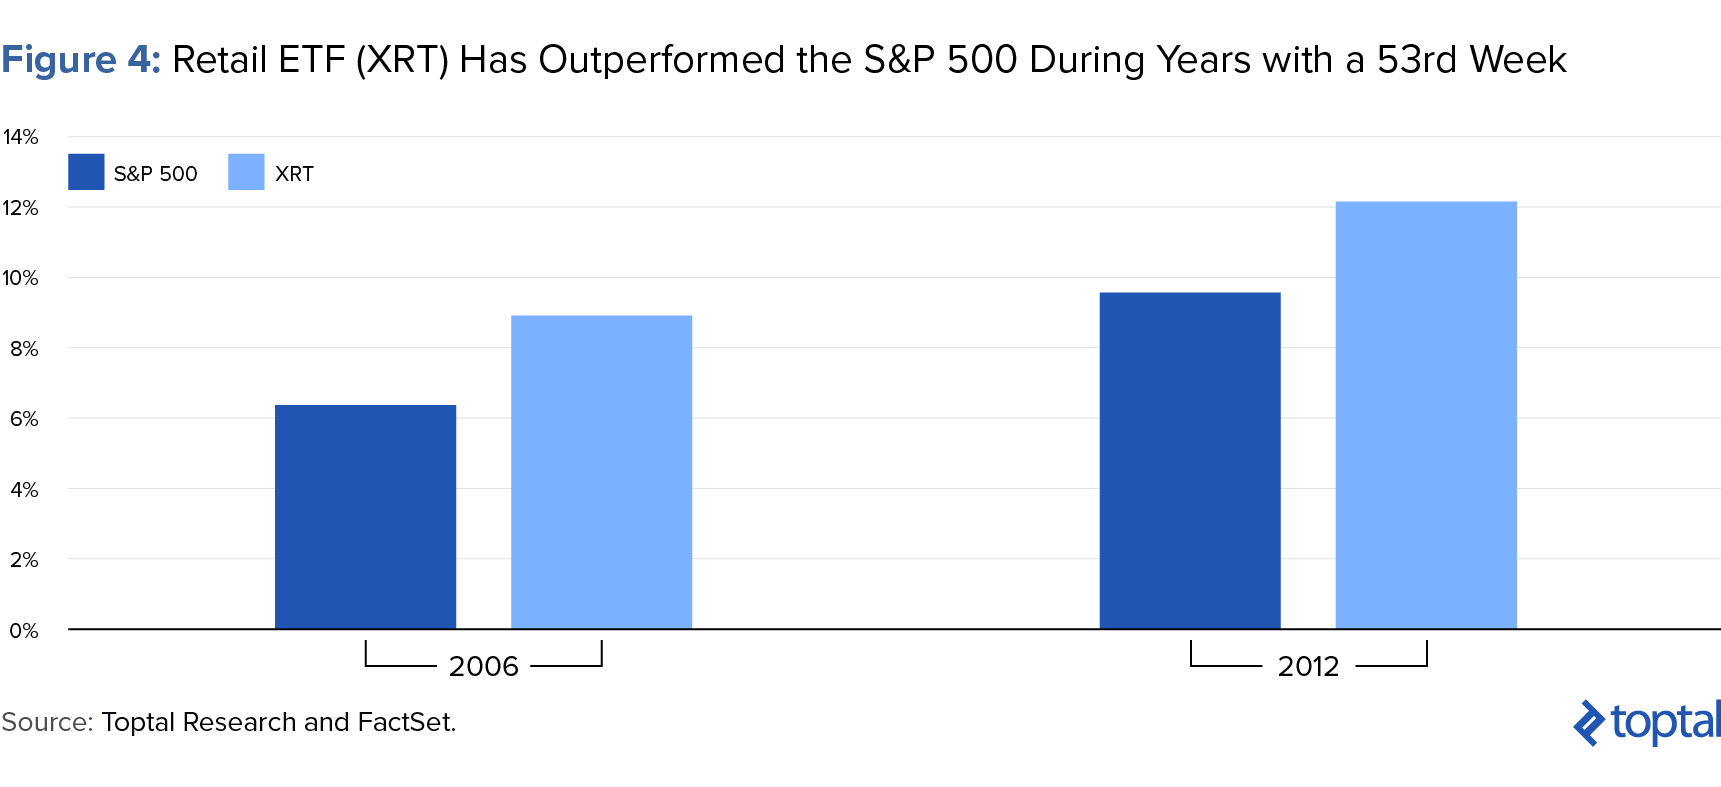 Figure 4: Retail ETF (XRT) Has Outperformed the S&P 500 During Years with a 53rd Week